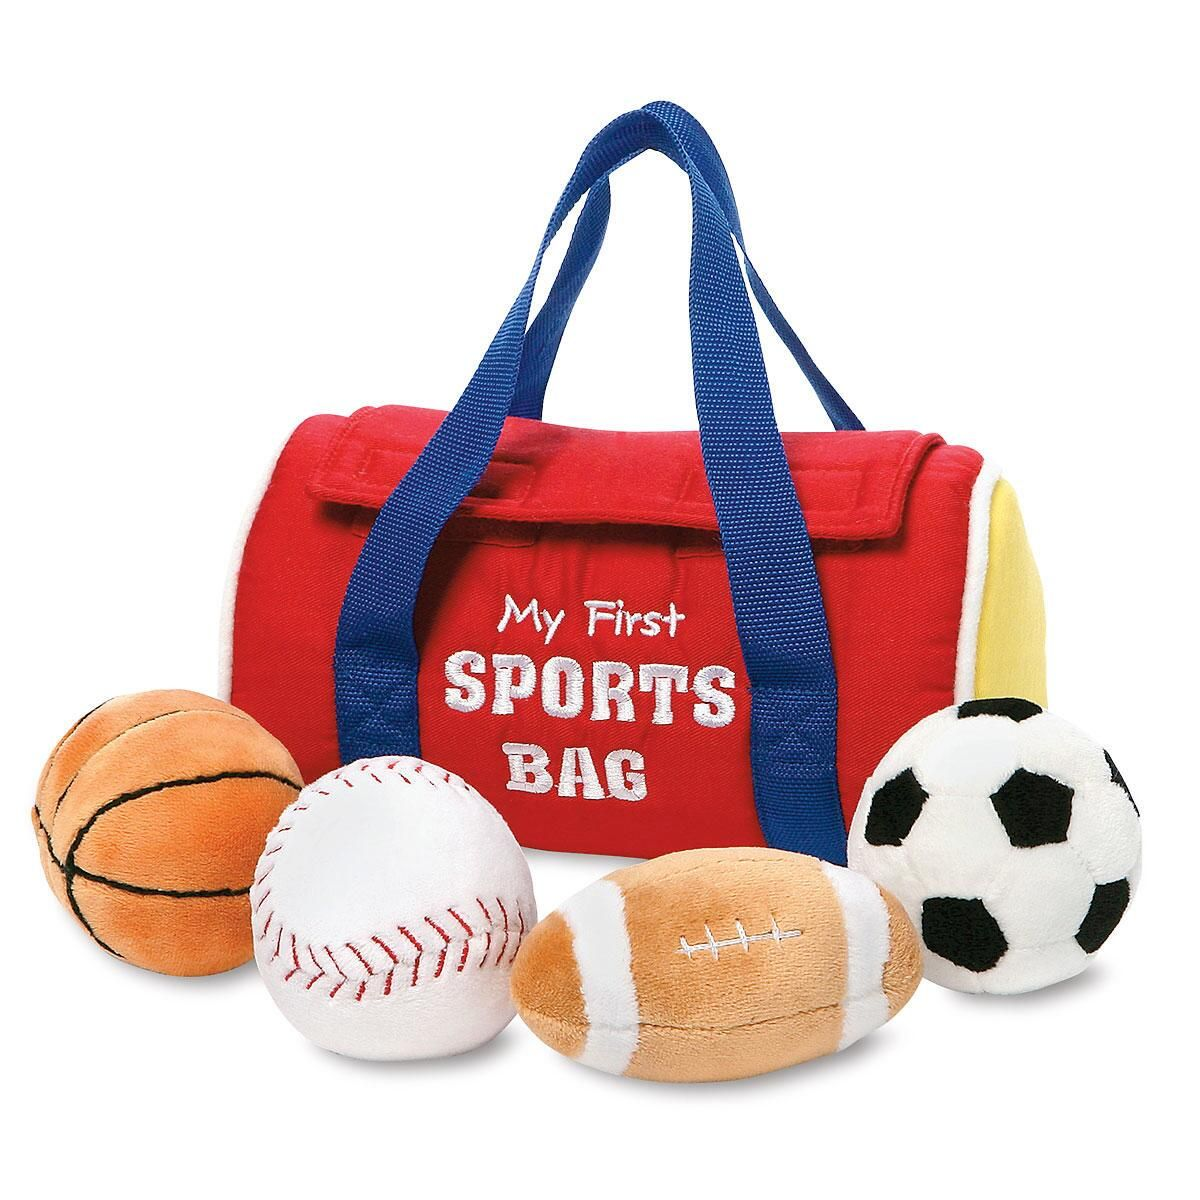 My First Sports Bag